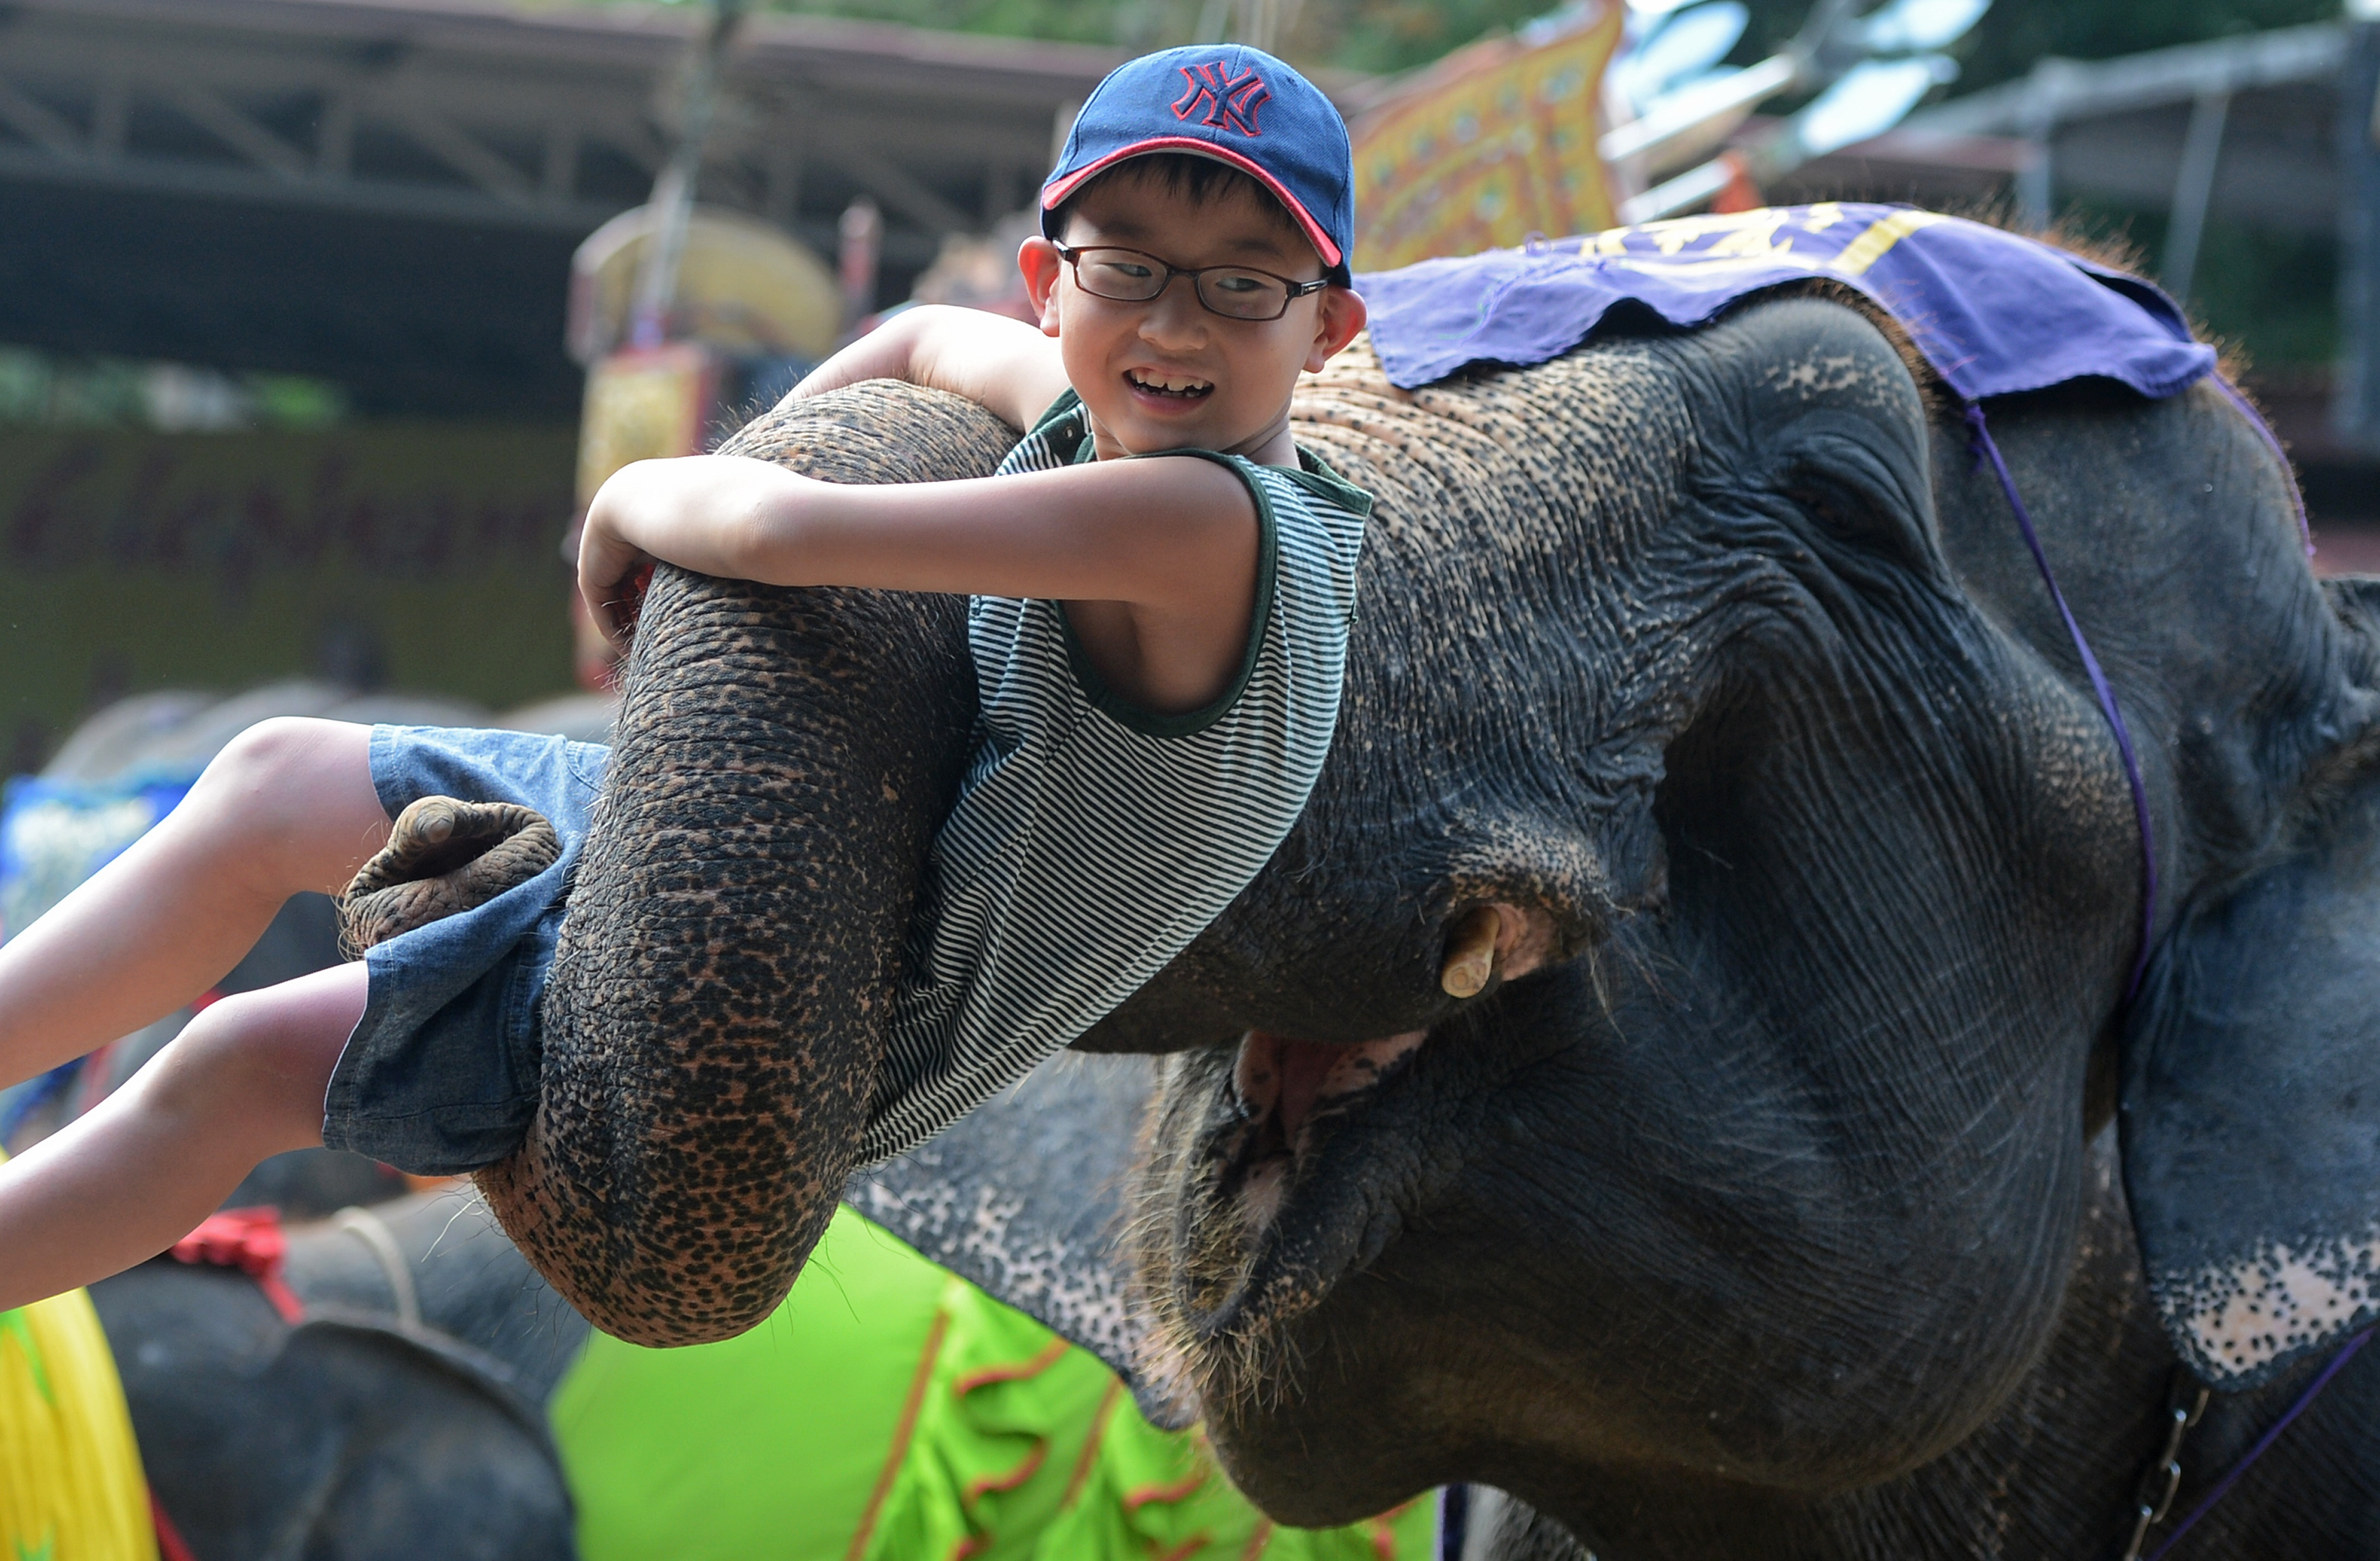 An elephant lifts a tourist during a show in Pattaya, Thailand on March 1, 2013.